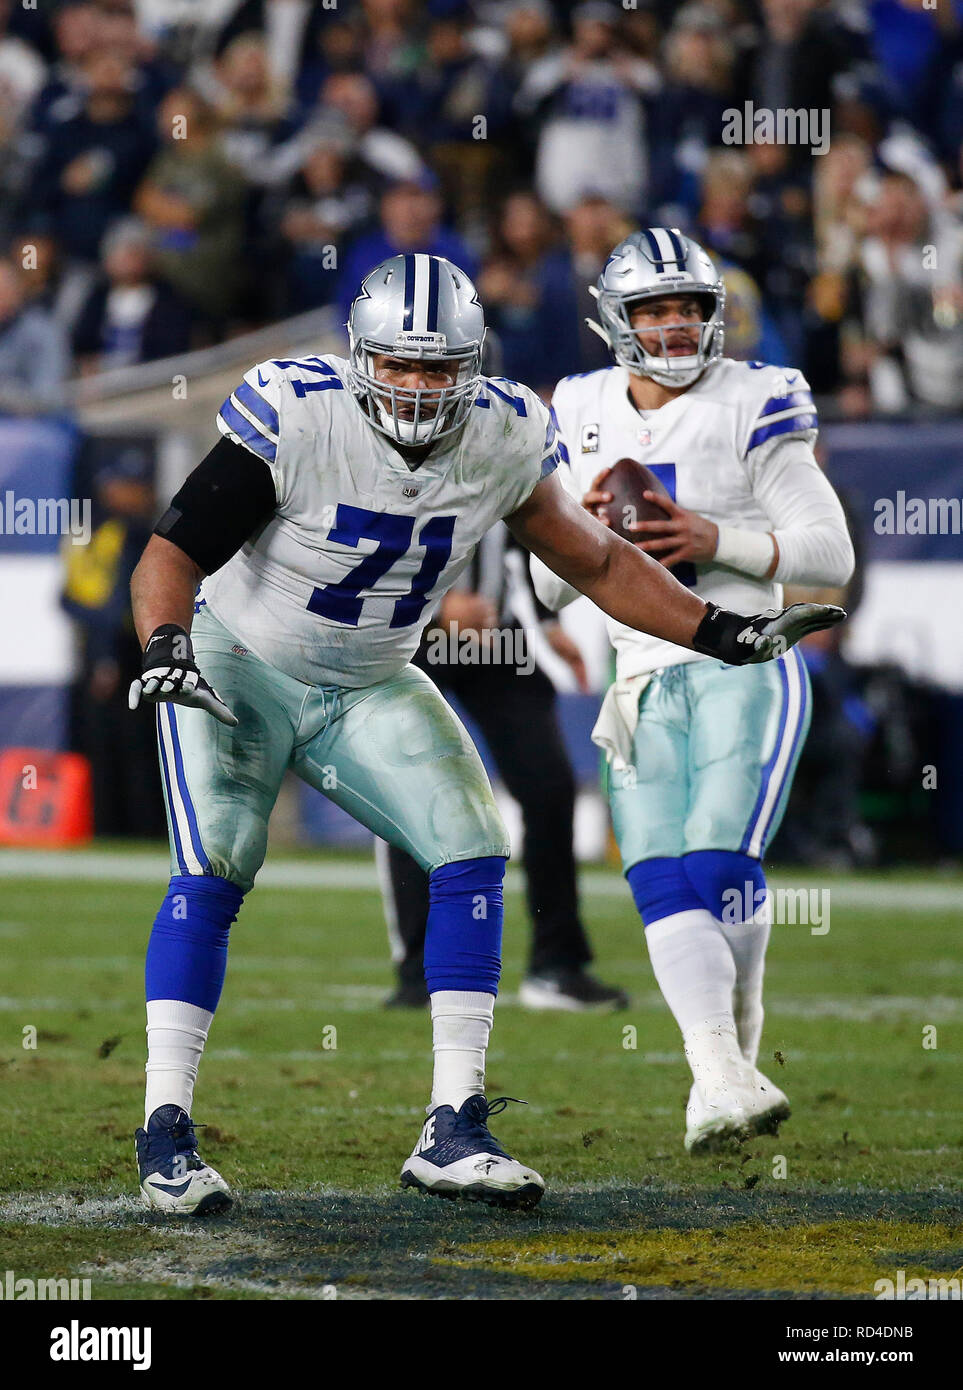 January 12, 2019 Dallas Cowboys offensive tackle La'el Collins #71 in action during the NFC Divisional Round playoff game between the Los Angeles Rams and the Dallas Cowboys at the Los Angeles Coliseum in Los Angeles, California. Charles Baus/CSM. Stock Photo